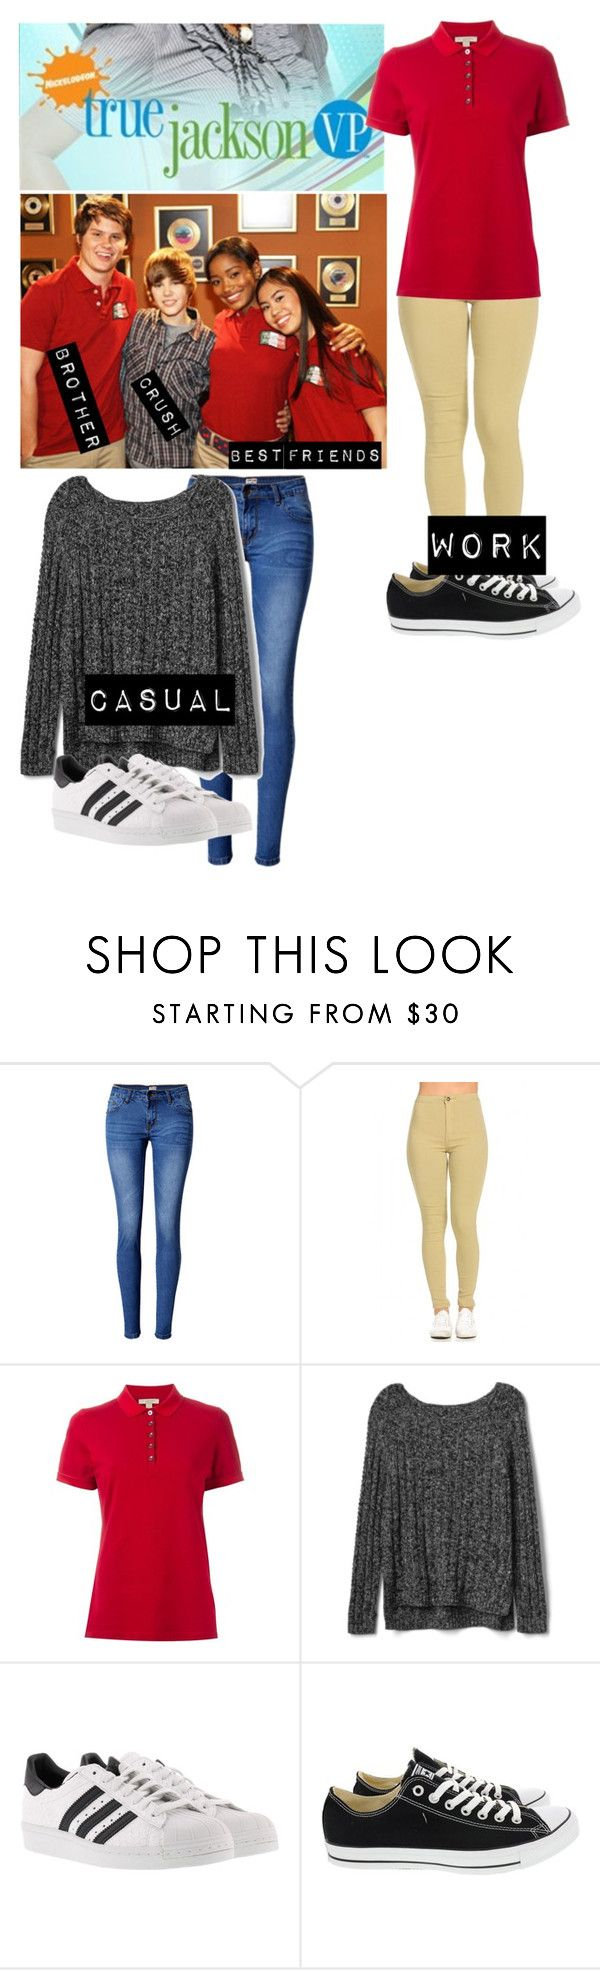 """Me in: 'true Jackson VP'"" by j-j-fandoms ❤ liked on Polyvore featuring Justin Bieber, WithChic, Burberry, Gap, adidas and Converse"